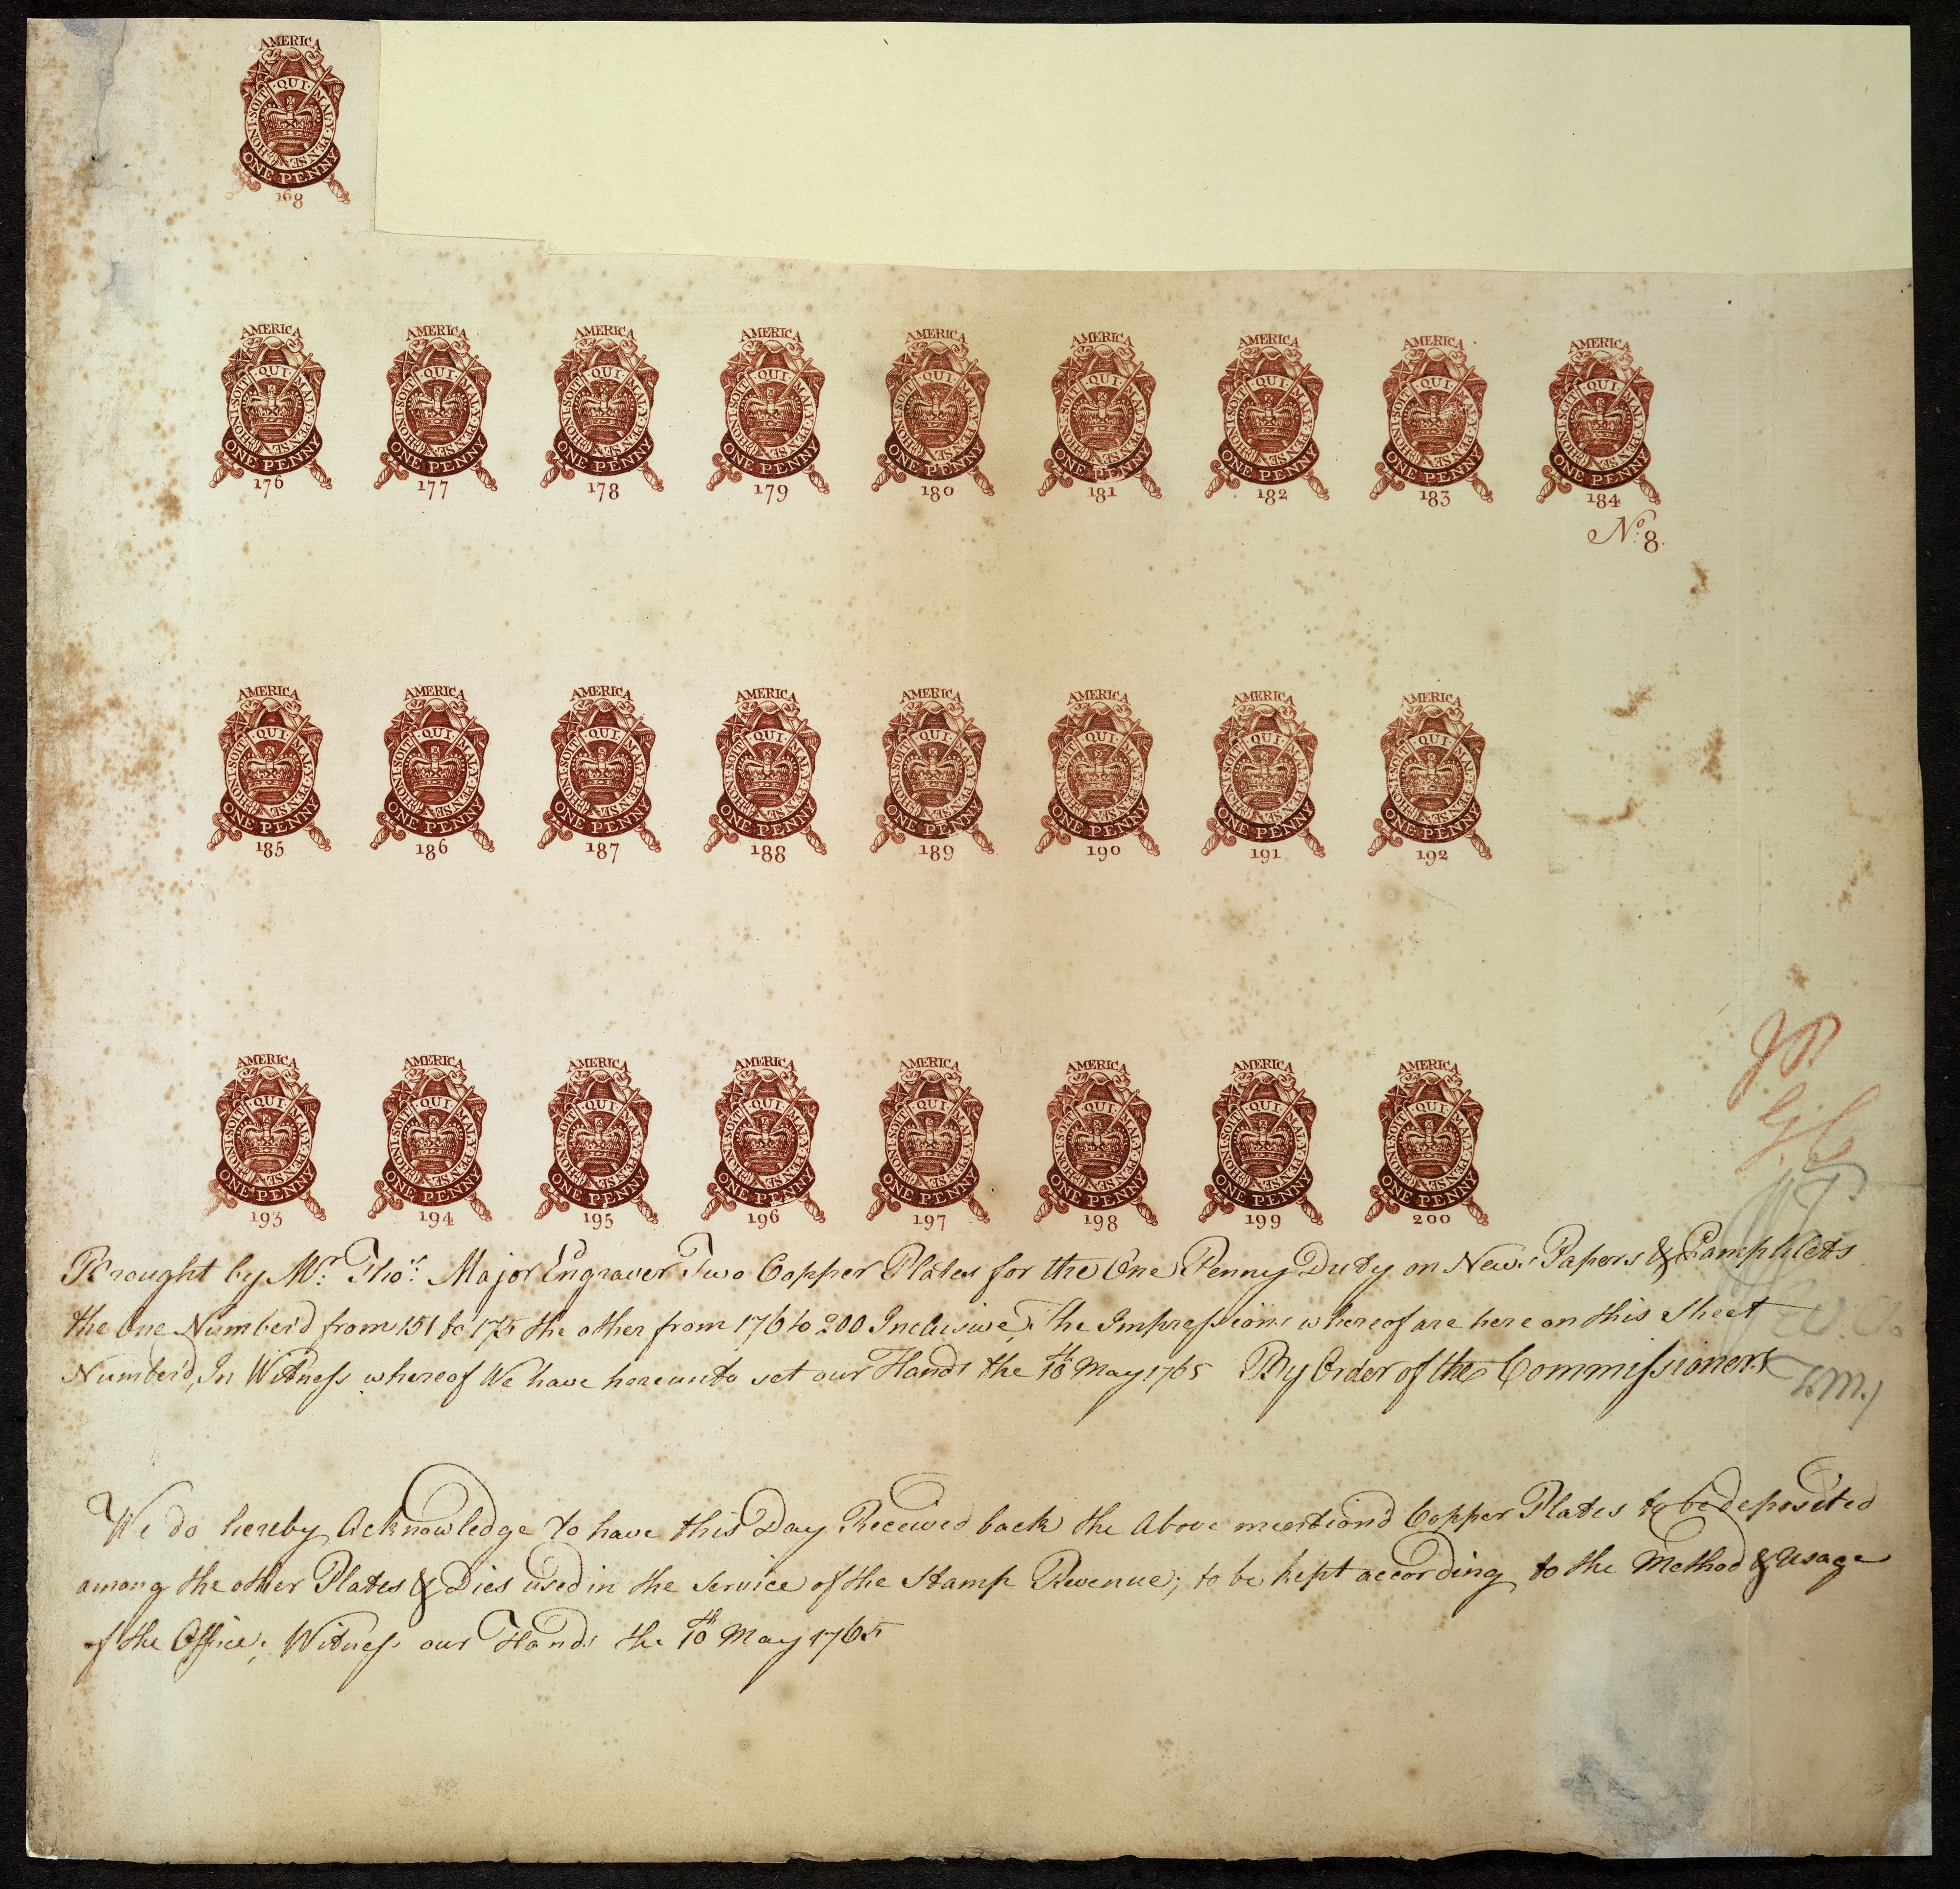 the stamp act crisis The stamp act is considered a follow-up to these administrative changes the seven years war, which involved a majority of the european what was the stamp act crisis trade duties and some basic taxes were prevalent in the trade that was carried out between the colonies and great britain.